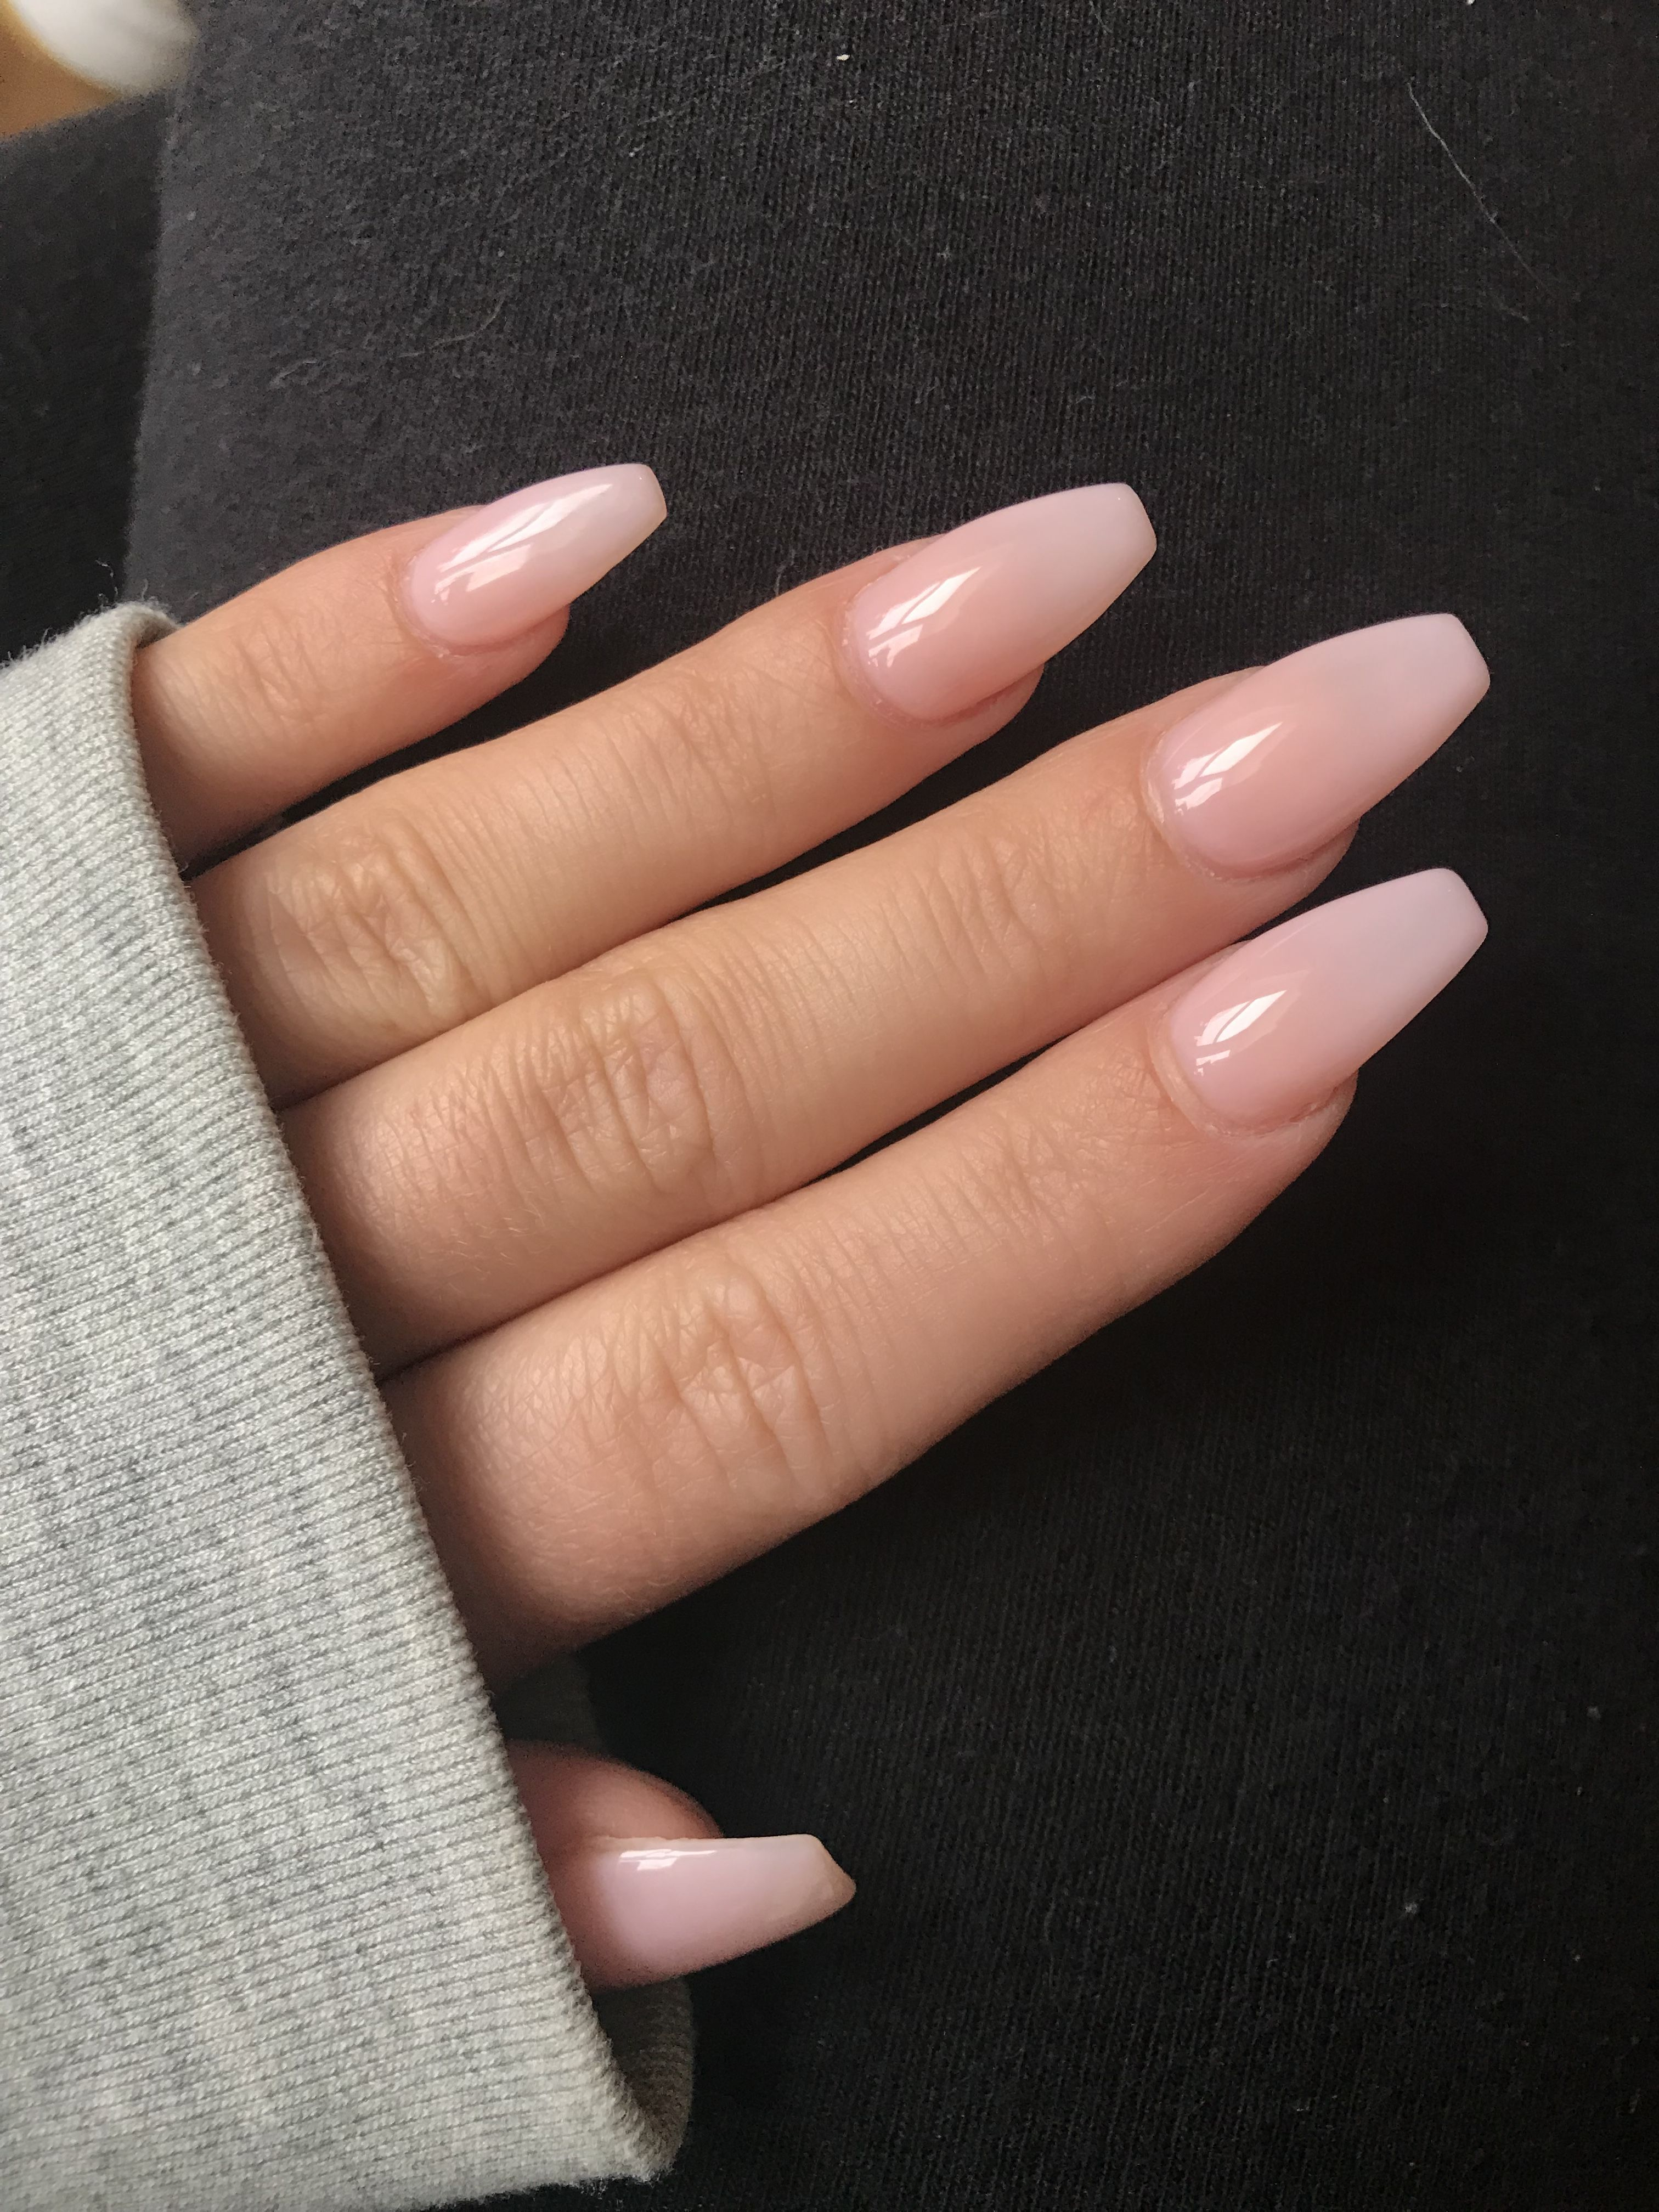 Image result for opi pink acrylic coffin nails | Beauty Aids